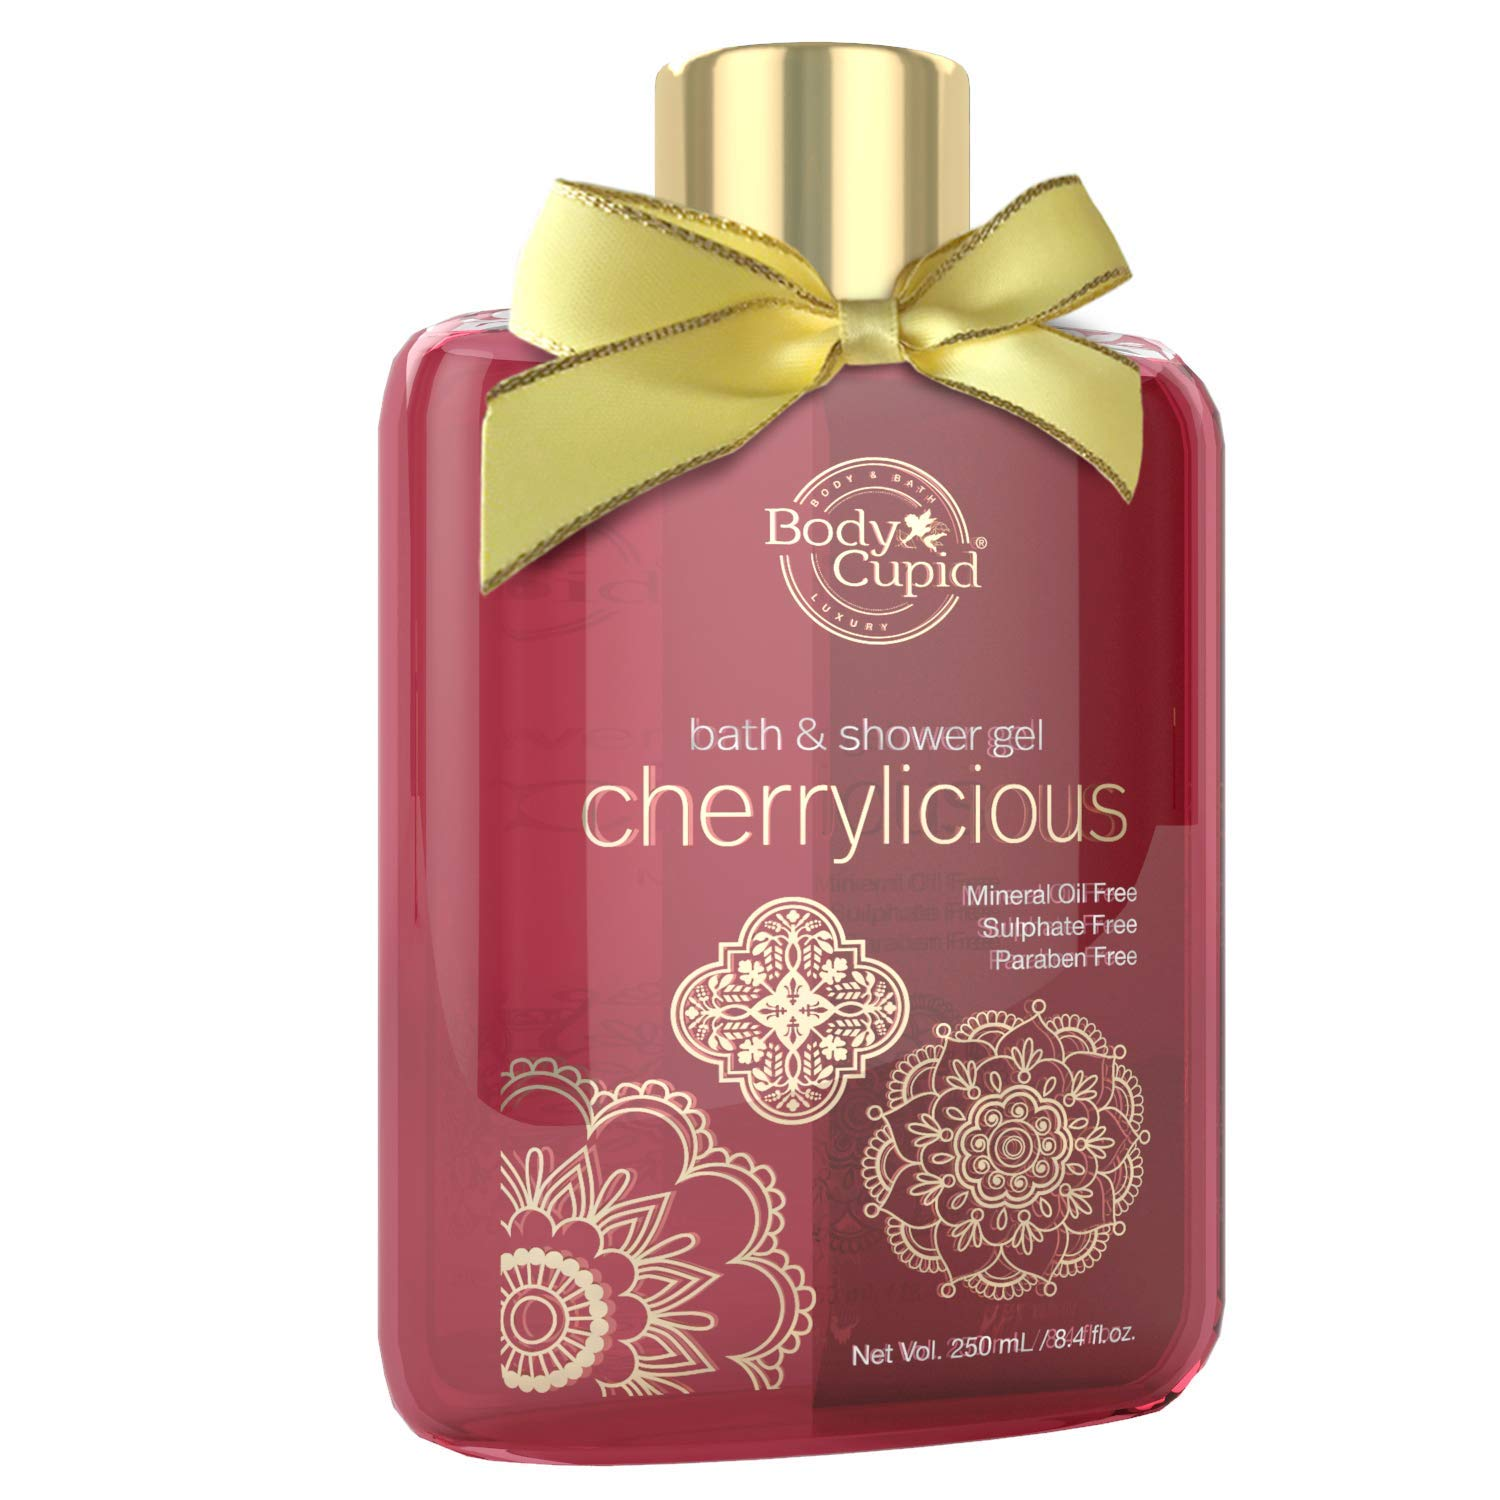 Body Cupid Cherrylicious No Parabens and Sulphates Shower Gel, Red, 250ml